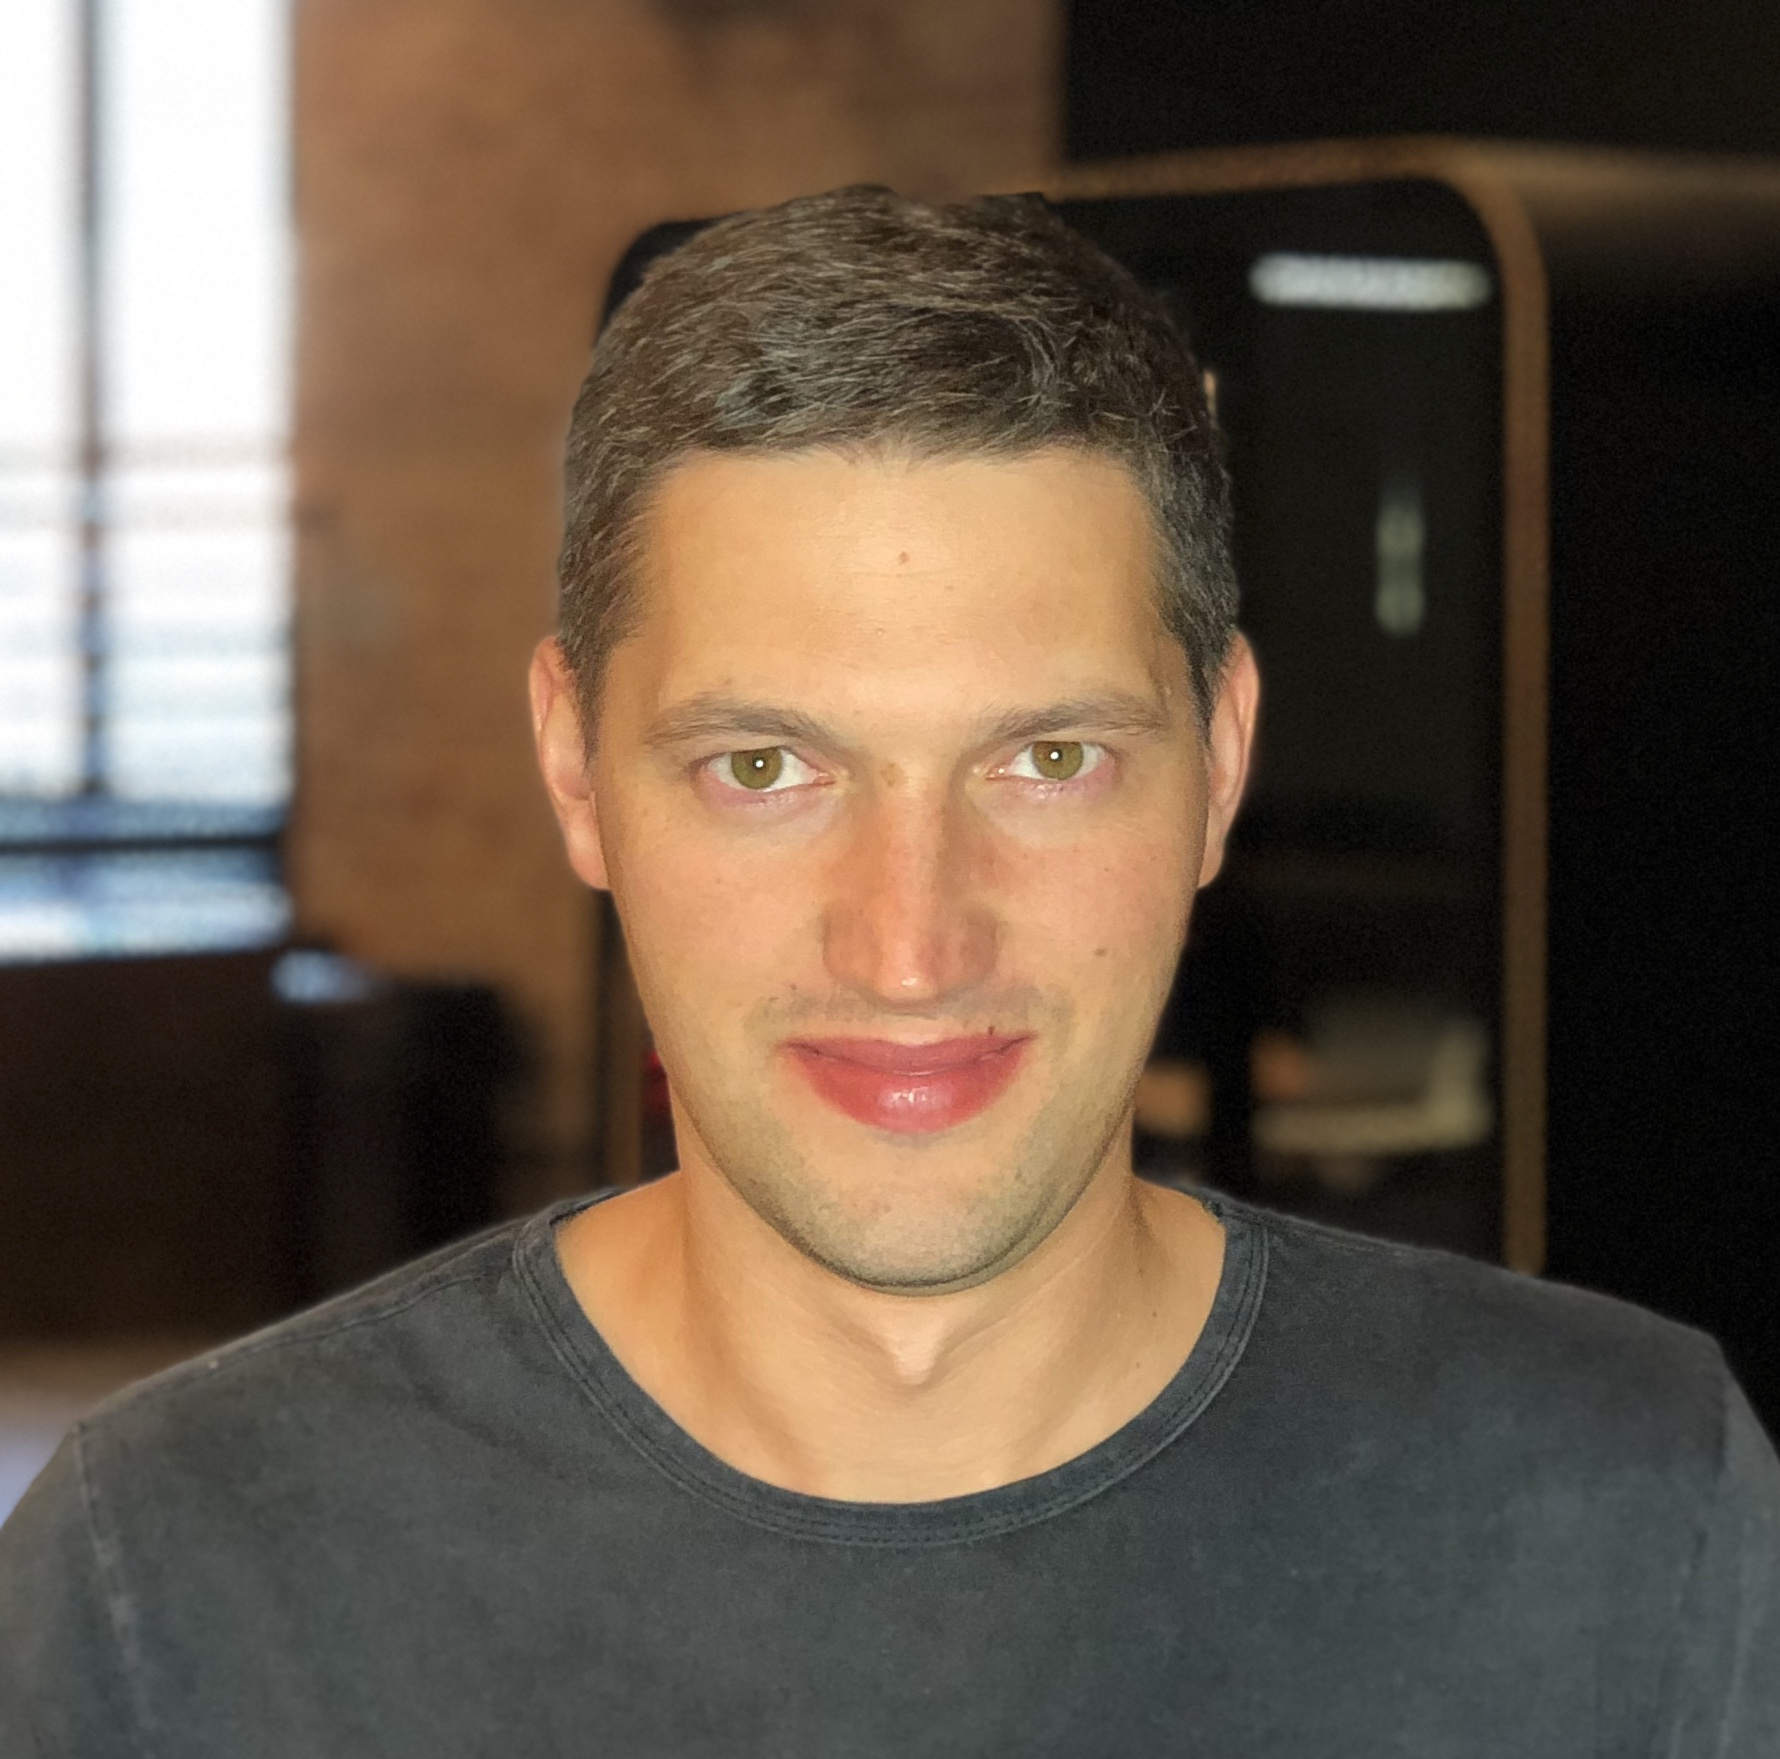 Alexander Shakaryan - Alexander is the founder of Craftstay, a member of Corporate Housing Providers Association. He has been at the intersection of hospitality and tech for the past 10+ years.